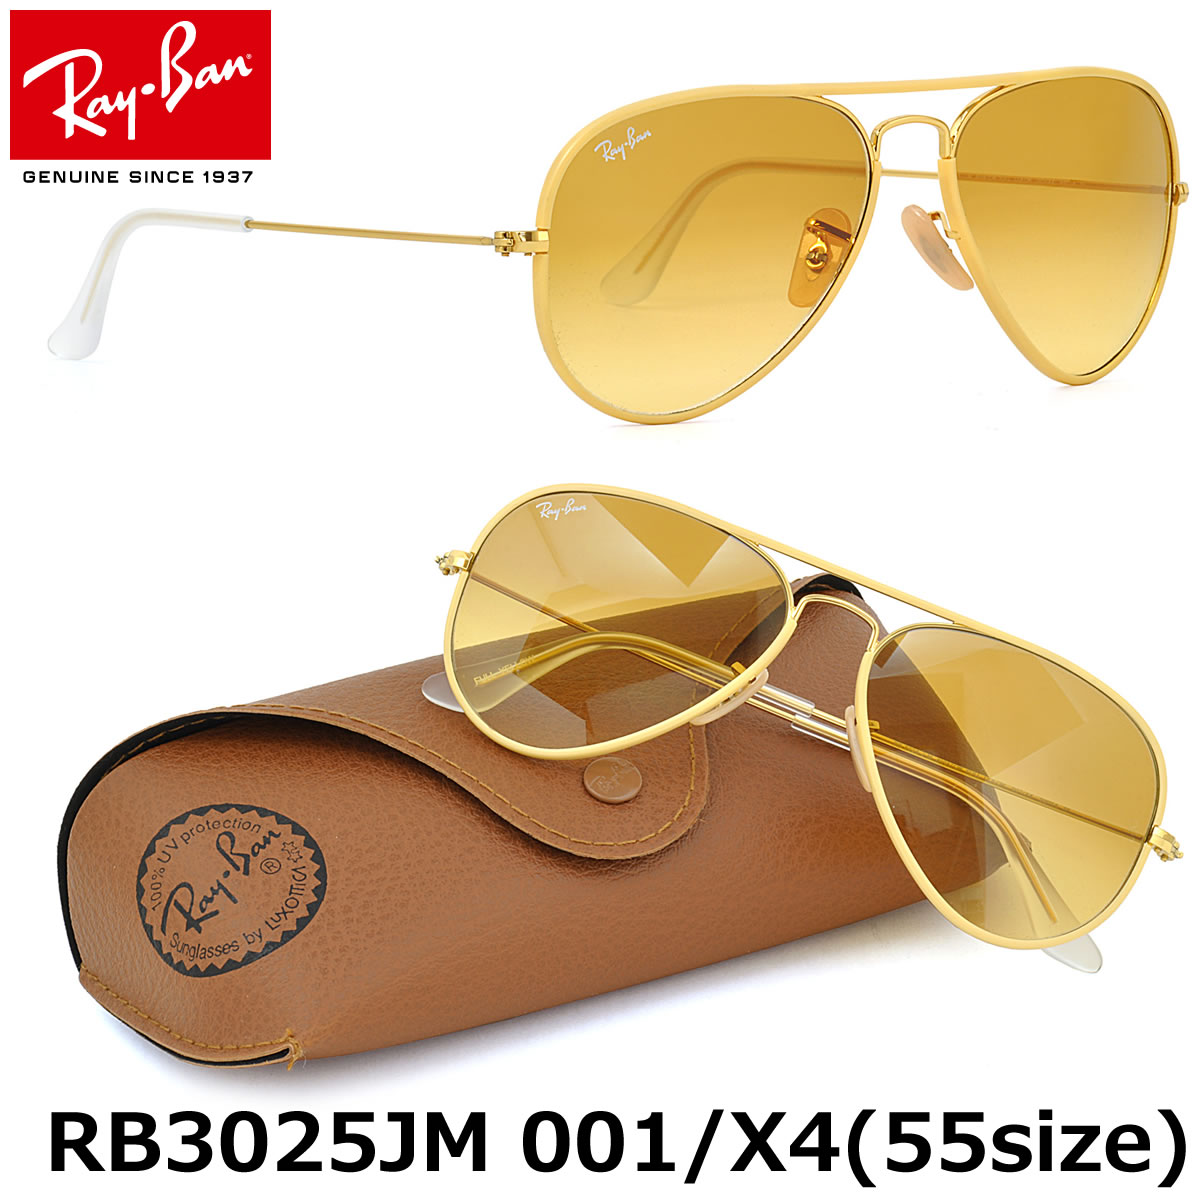 2cf8a8c792 Ray Ban Rb3025jm 001 x4 - Bitterroot Public Library